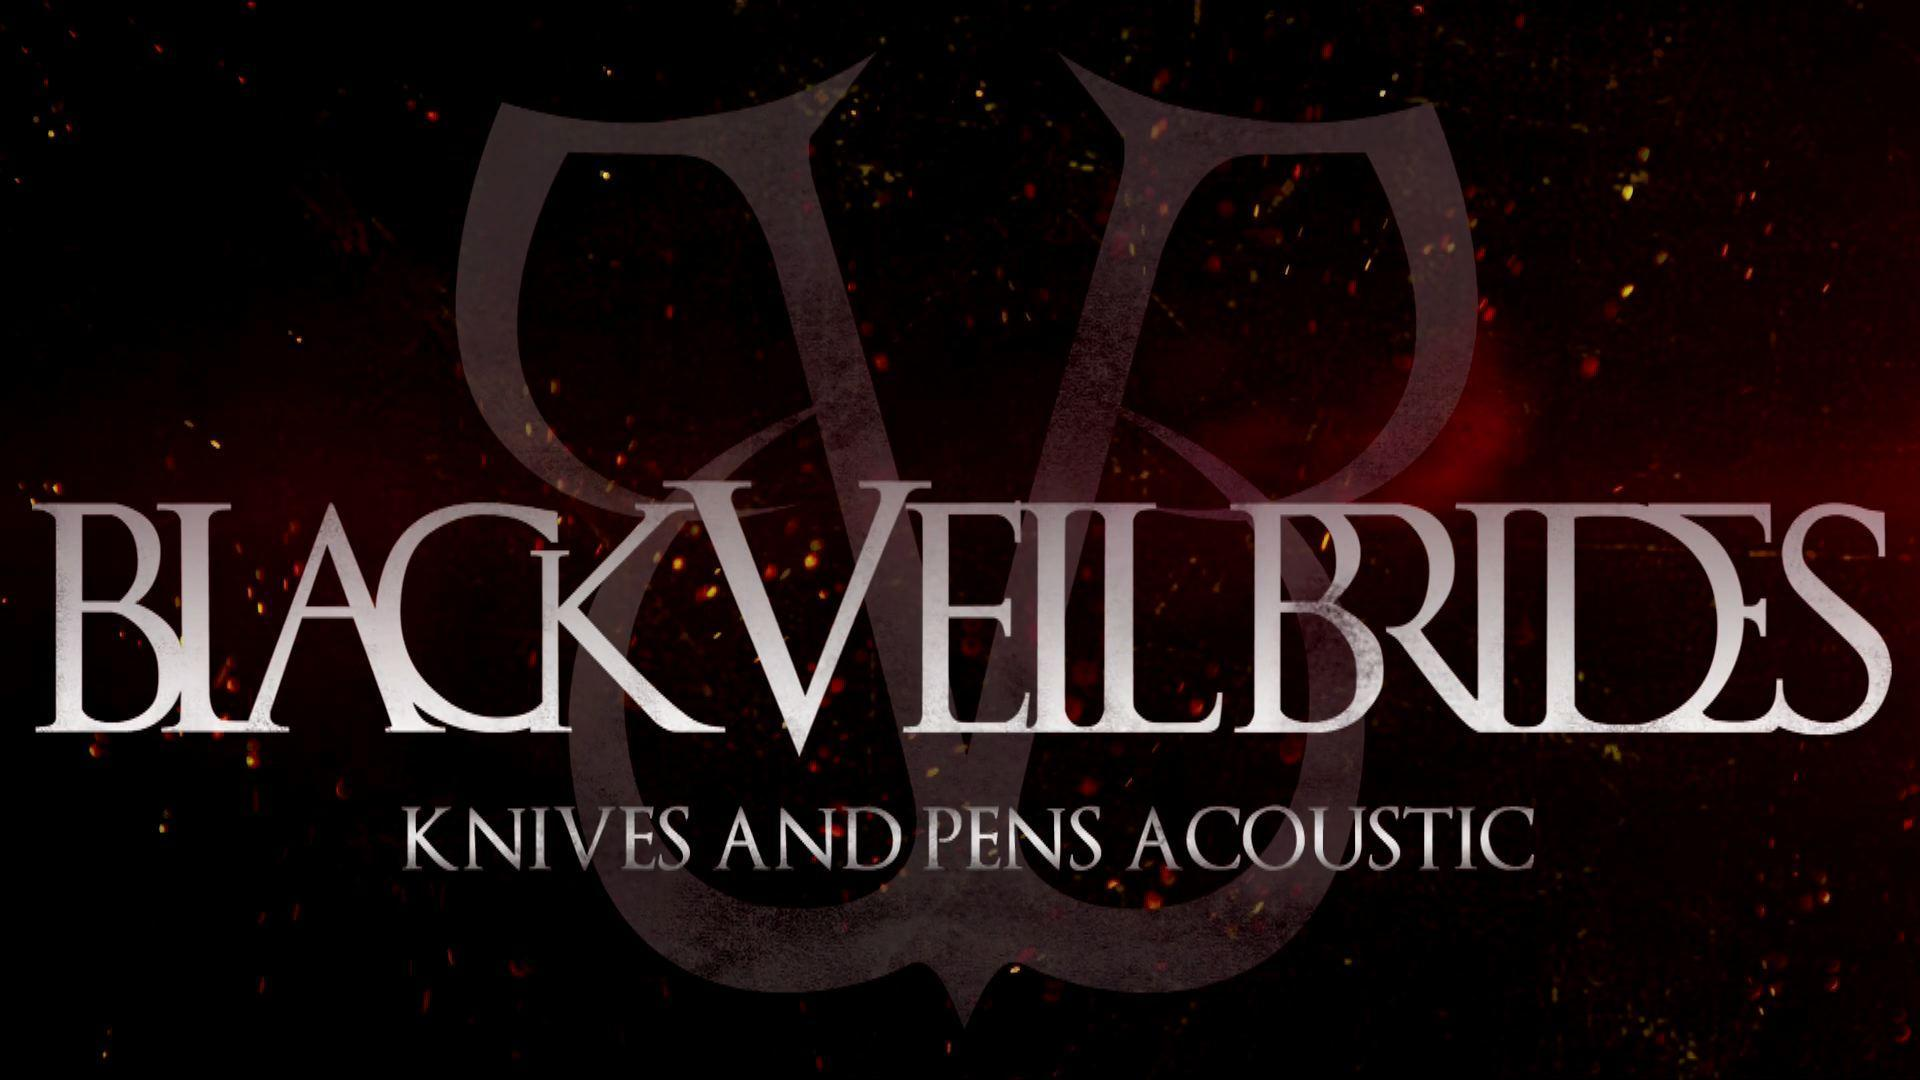 Veil Brides Backgrounds - Wallpaper Cave